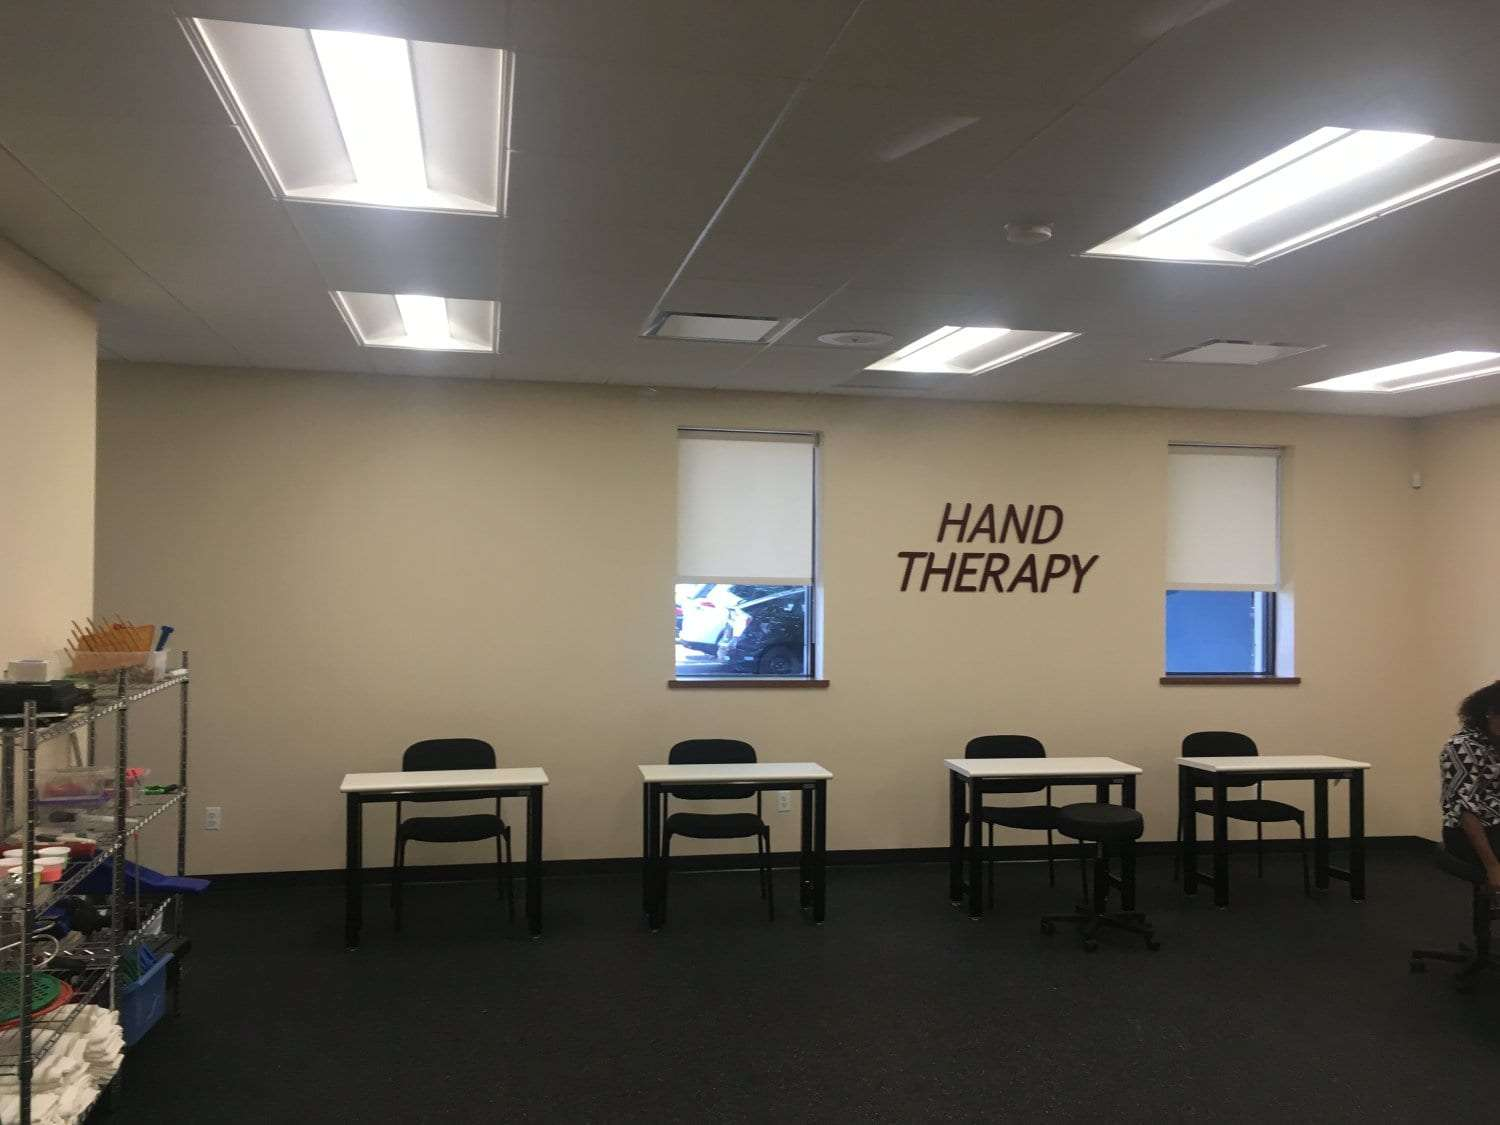 An image of four stations where patients will sit at for hand therapy in our physical therapy clinic in Hewlett, New York.